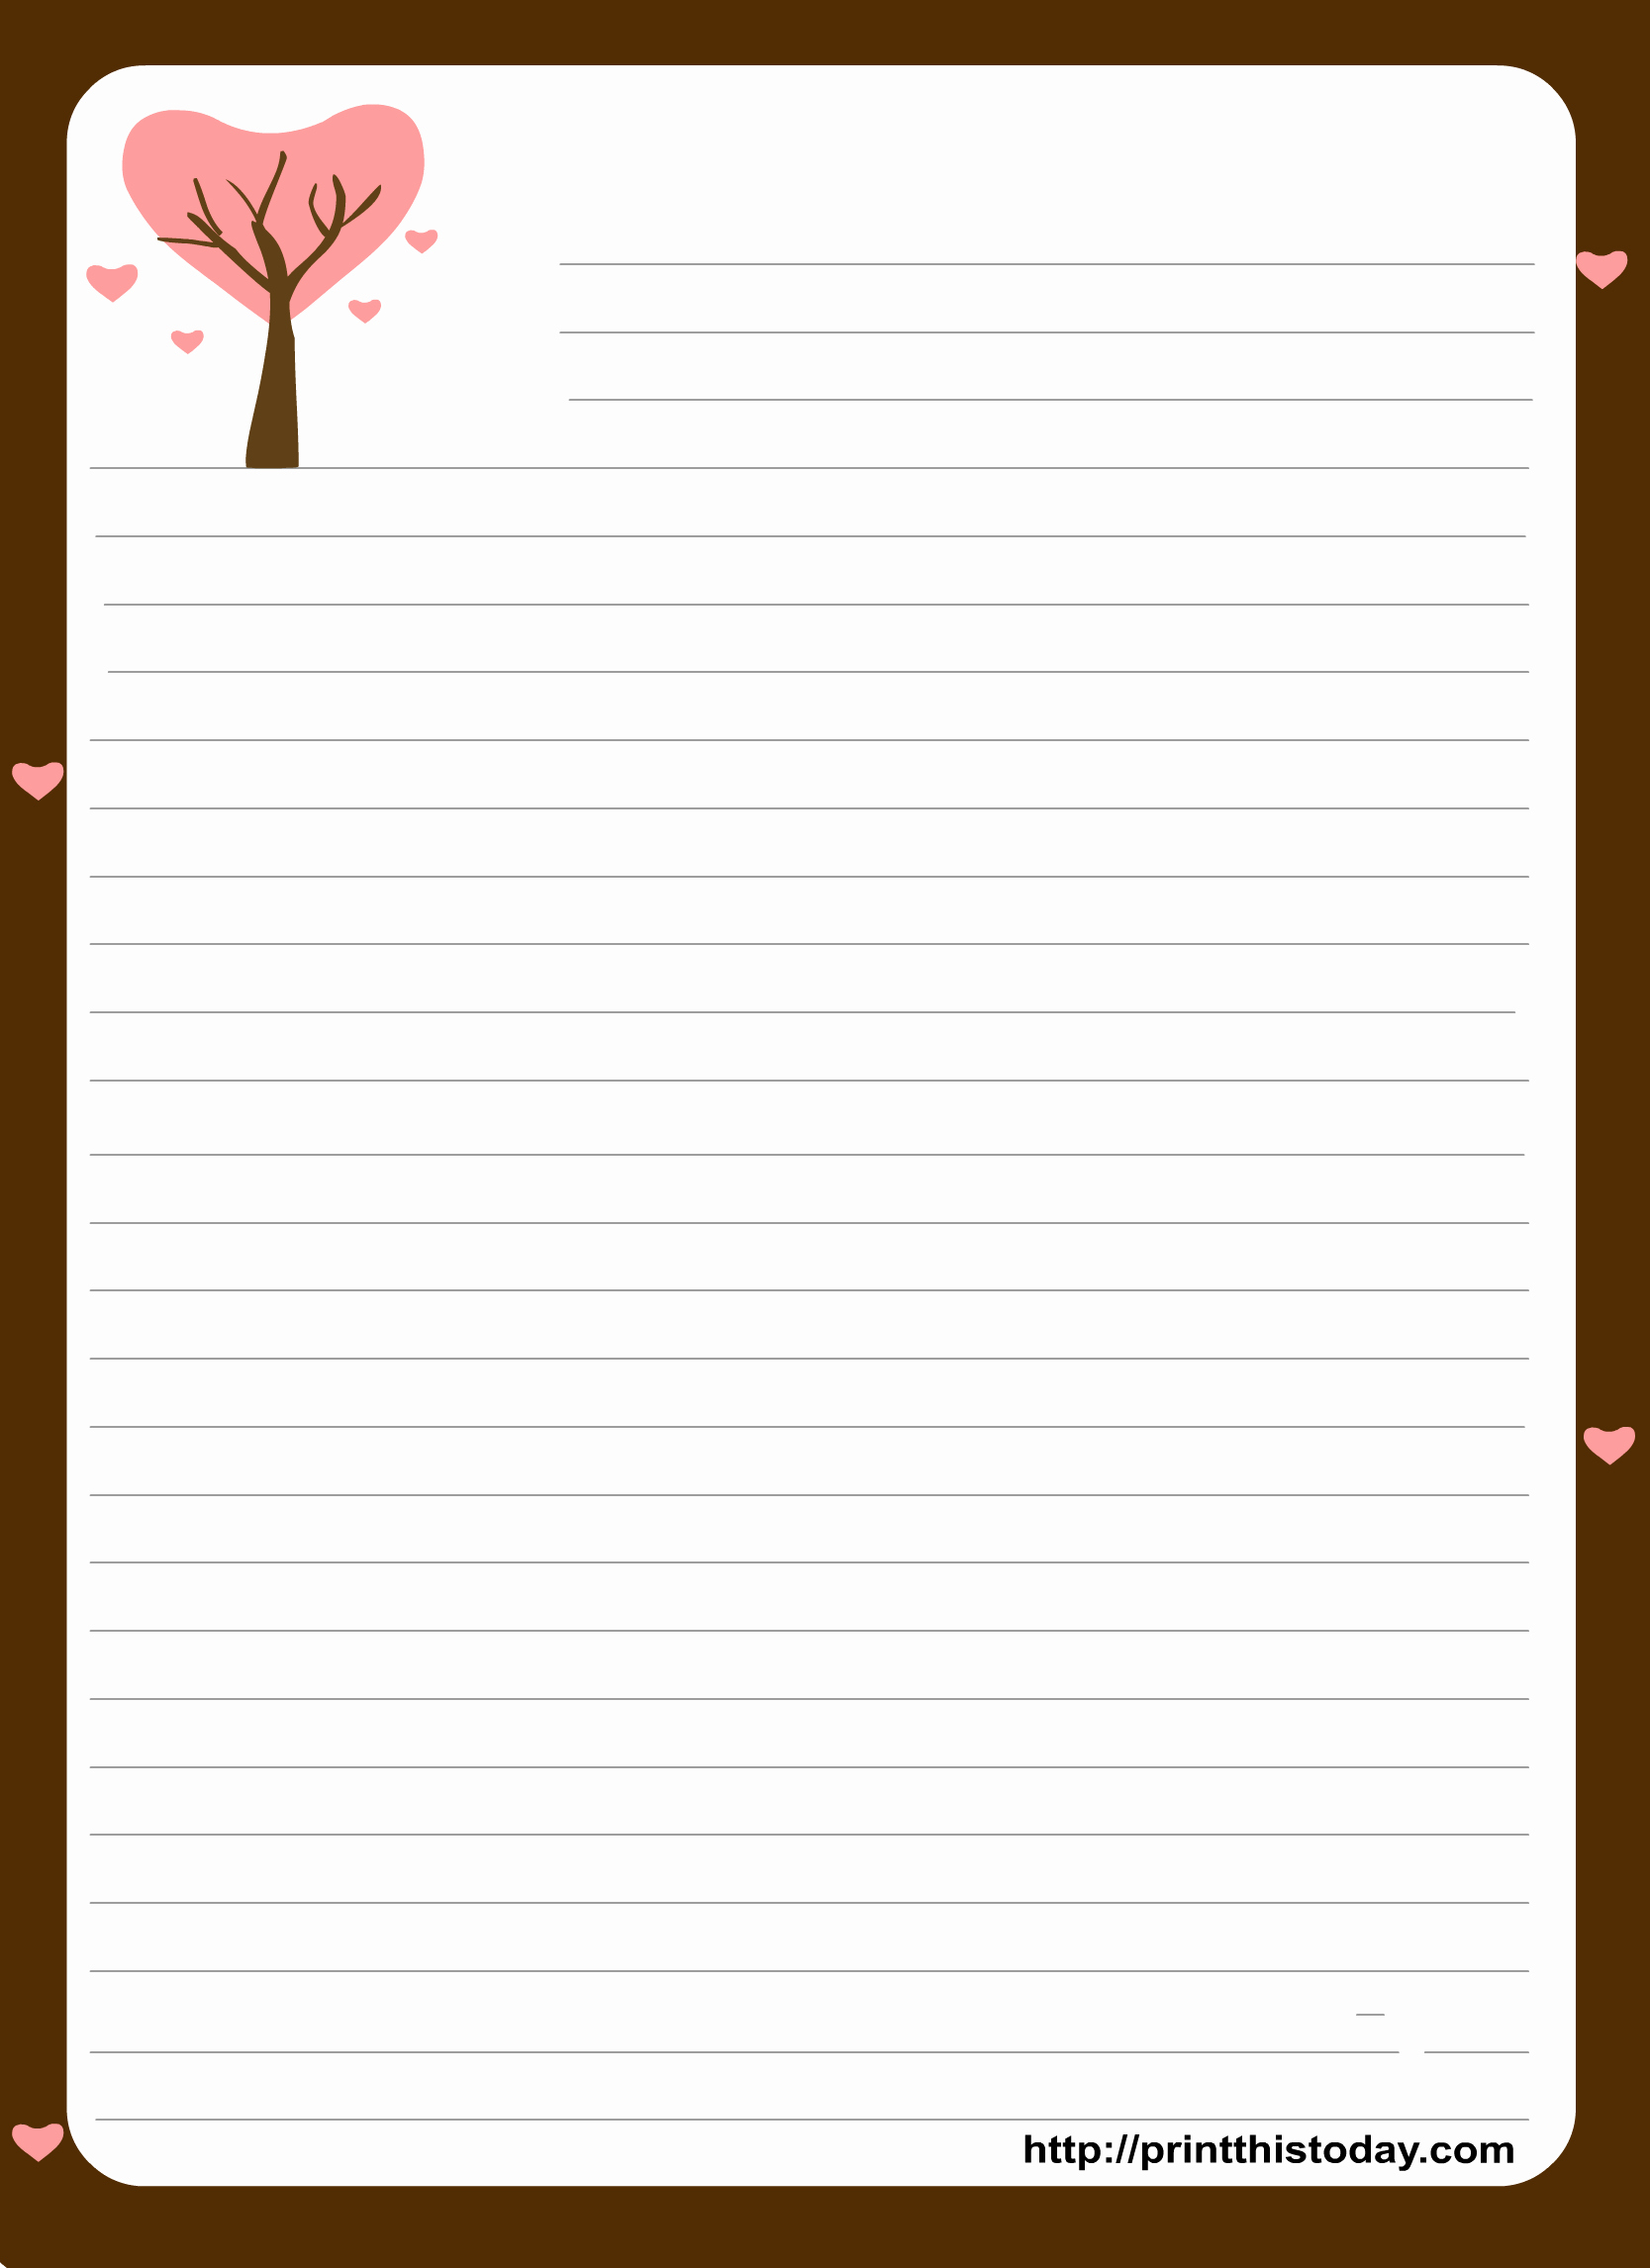 Free Printable Lined Stationary Awesome Free Printable Stationery Paper